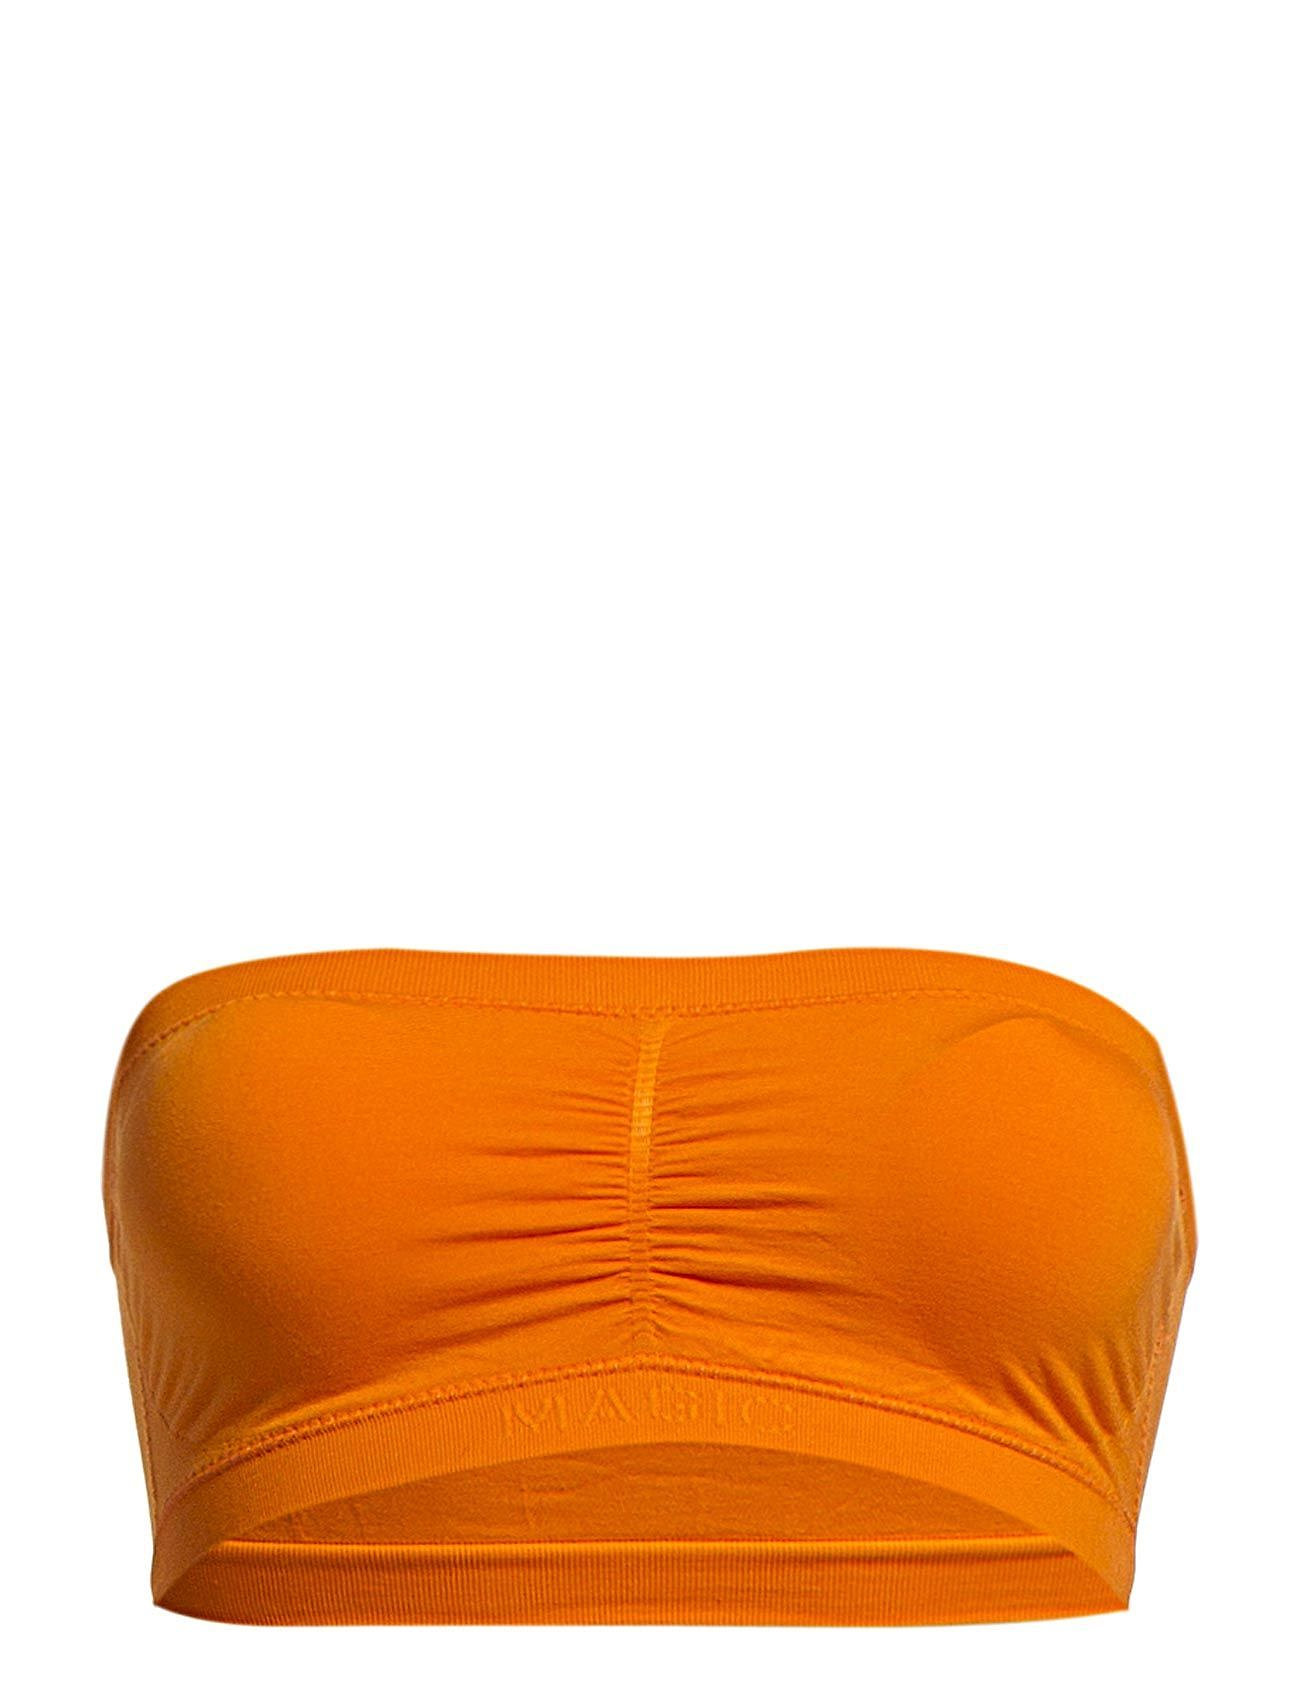 Image of Bandeau Push Up Bra Lingerie Bras & Tops Push-up Bra Orange Magic Bodyfashion (3452073265)